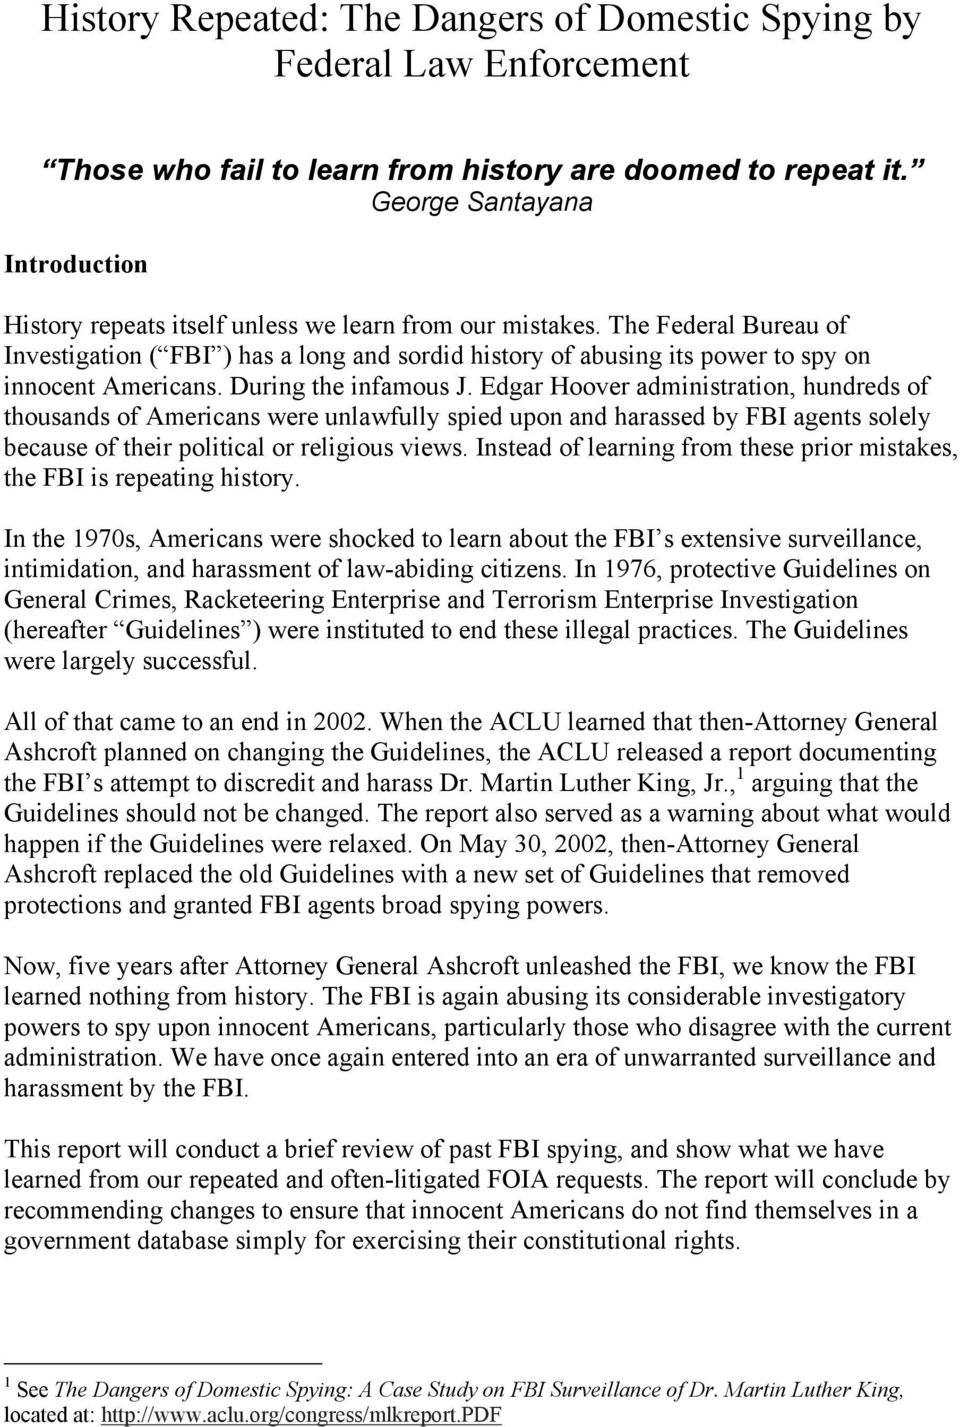 The Federal Bureau of Investigation ( FBI ) has a long and sordid history of abusing its power to spy on innocent Americans. During the infamous J.